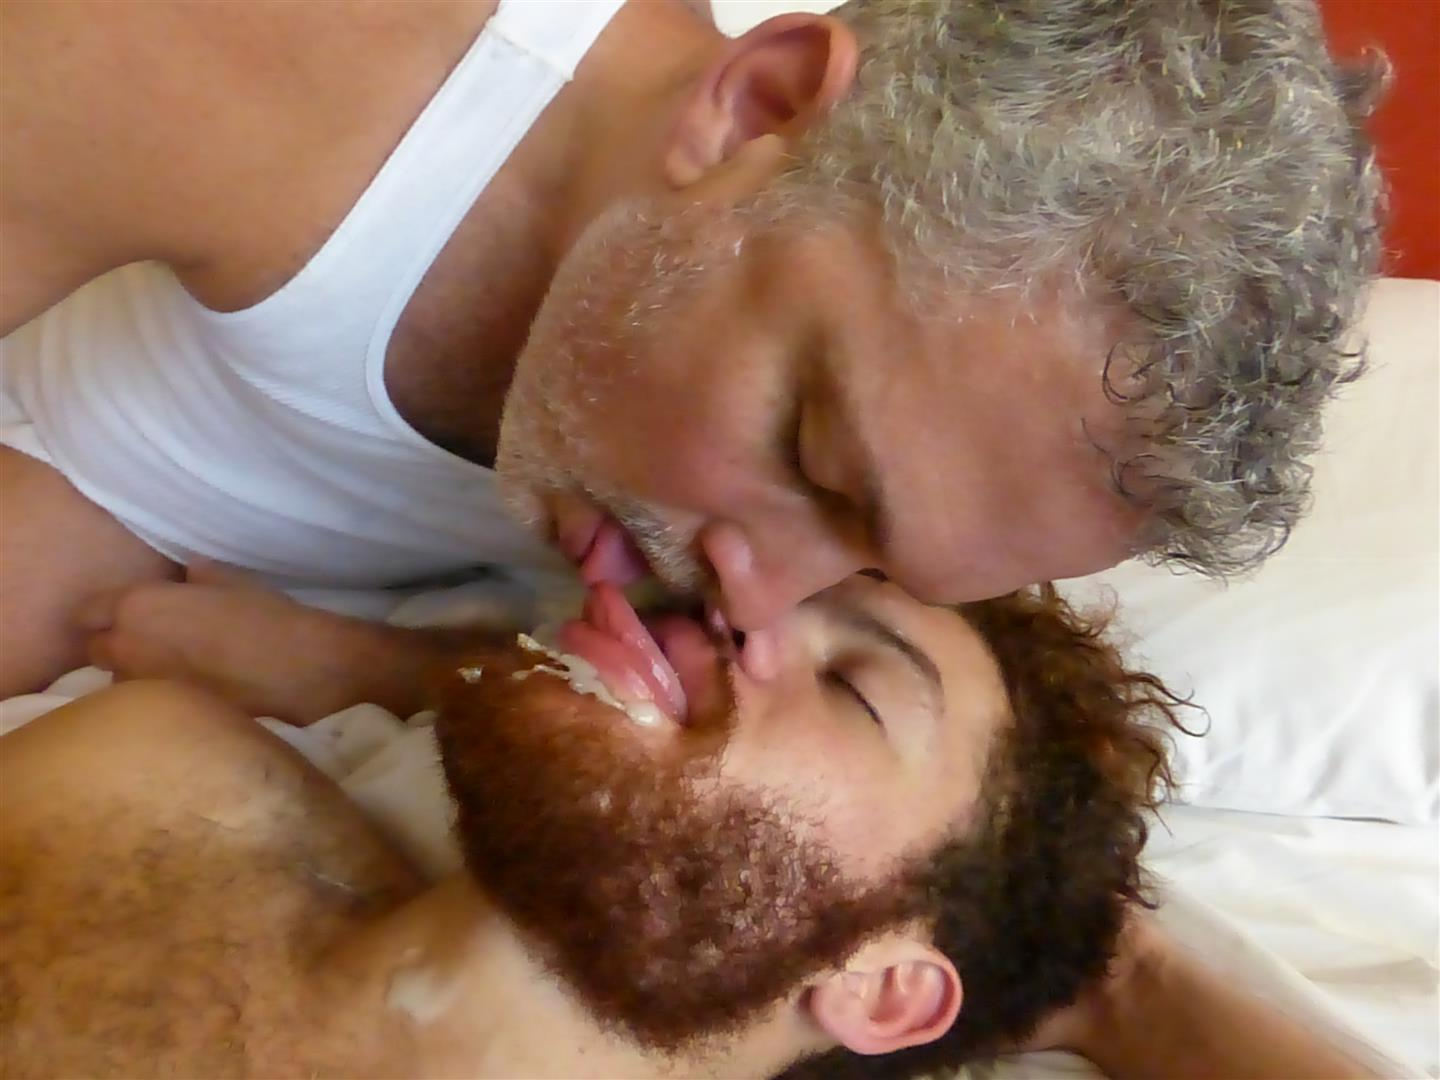 Maverick Men Adam Hairy Muscle Cub Barebacked By Two Muscle Daddies Amateur Gay Porn 36 Young Hairy Muscle Cub With A Big Uncut Cock Takes Two Daddy Cocks